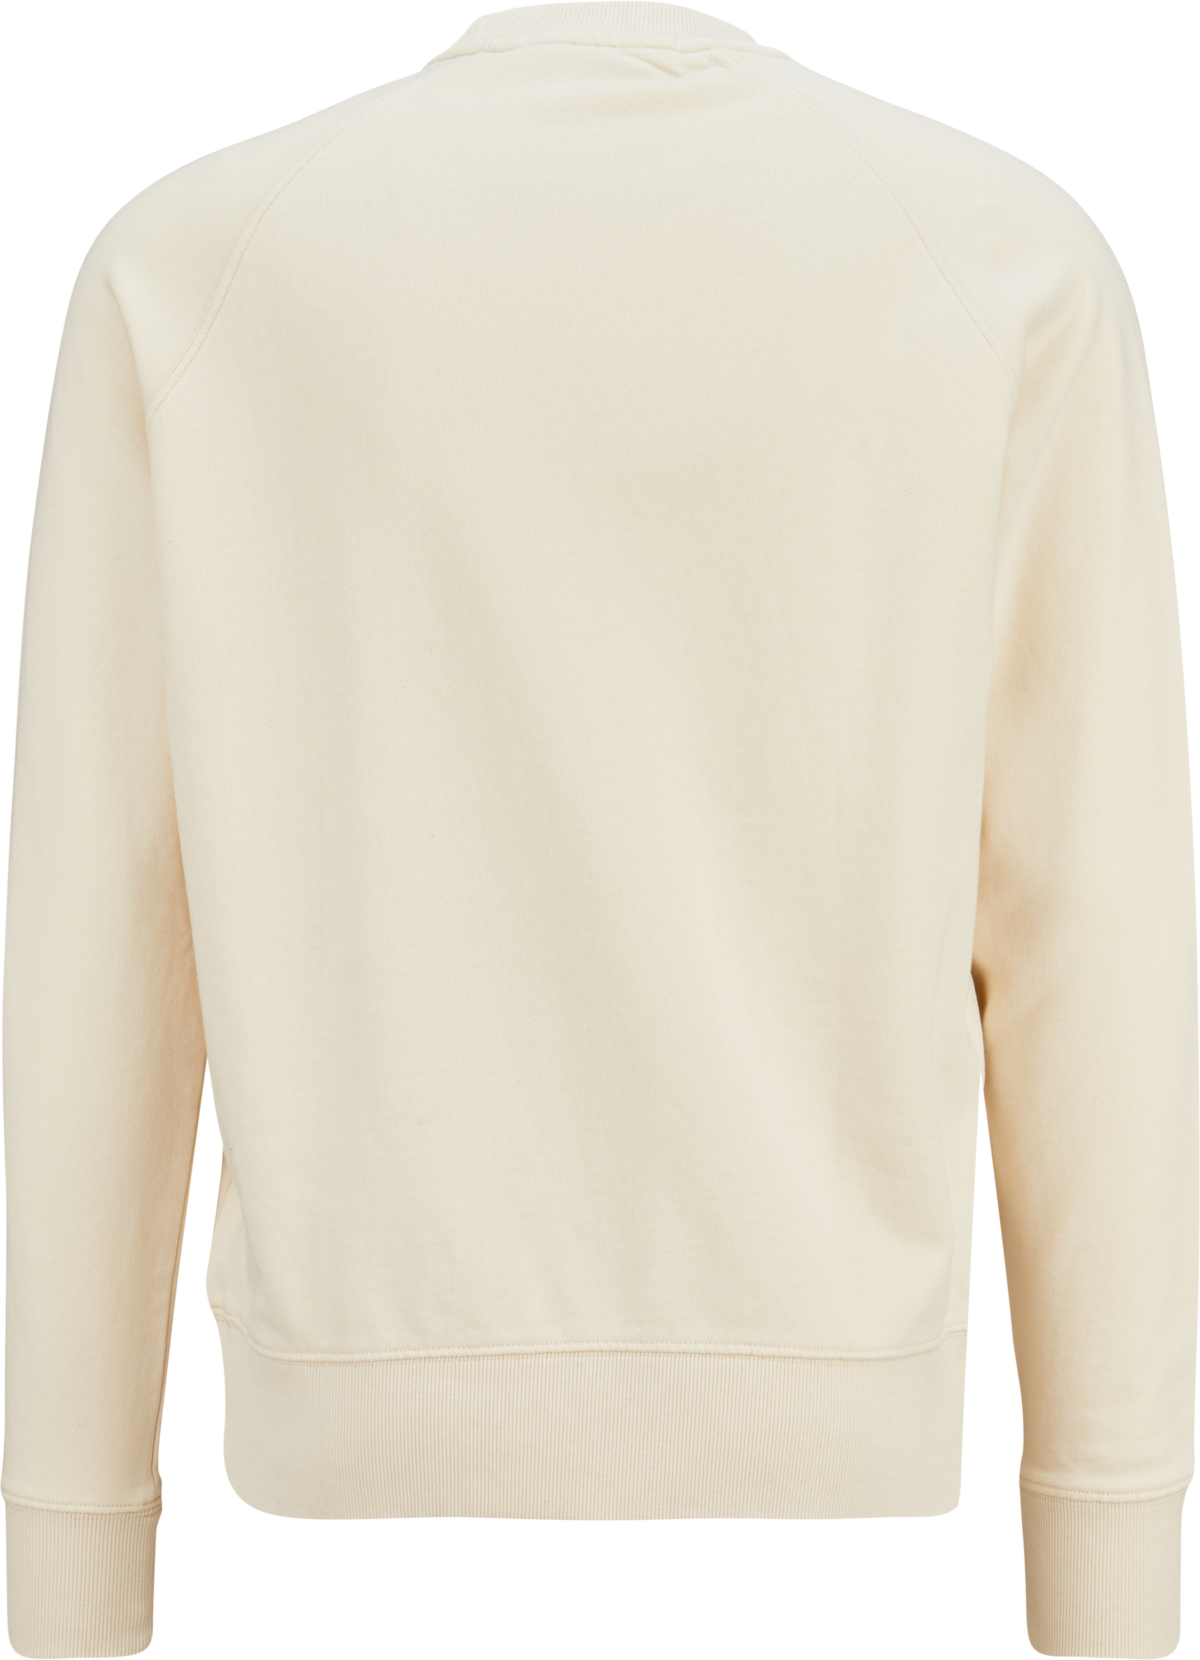 DRYKORN Sweatshirt in Creme 439934